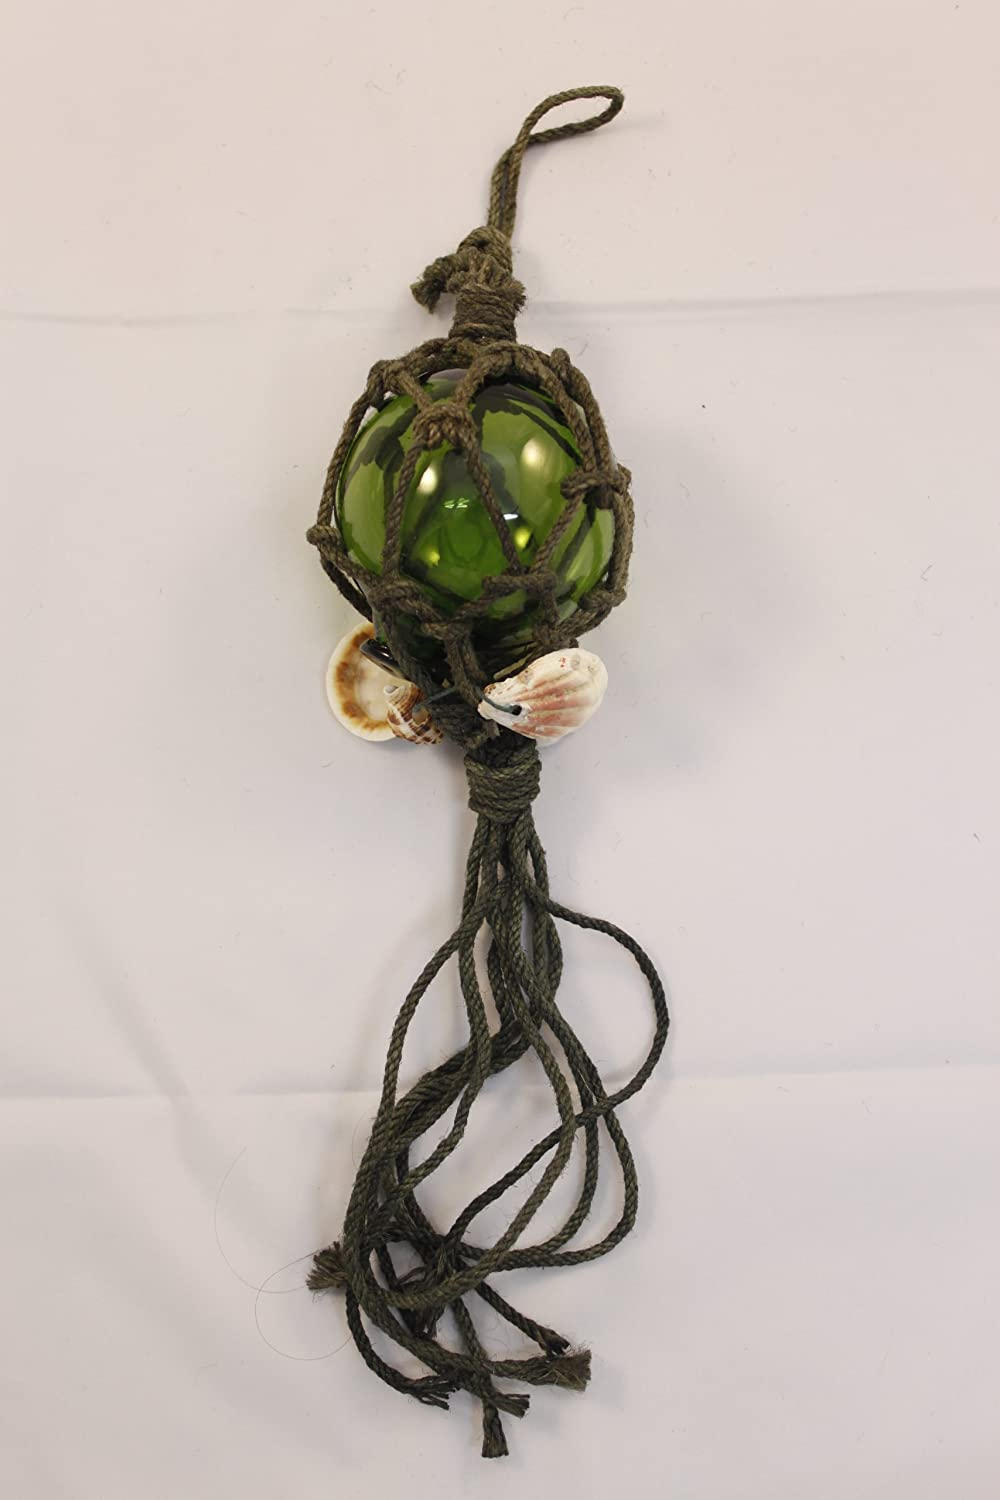 HS Green Glass Buoy Float w/Rope Decoration